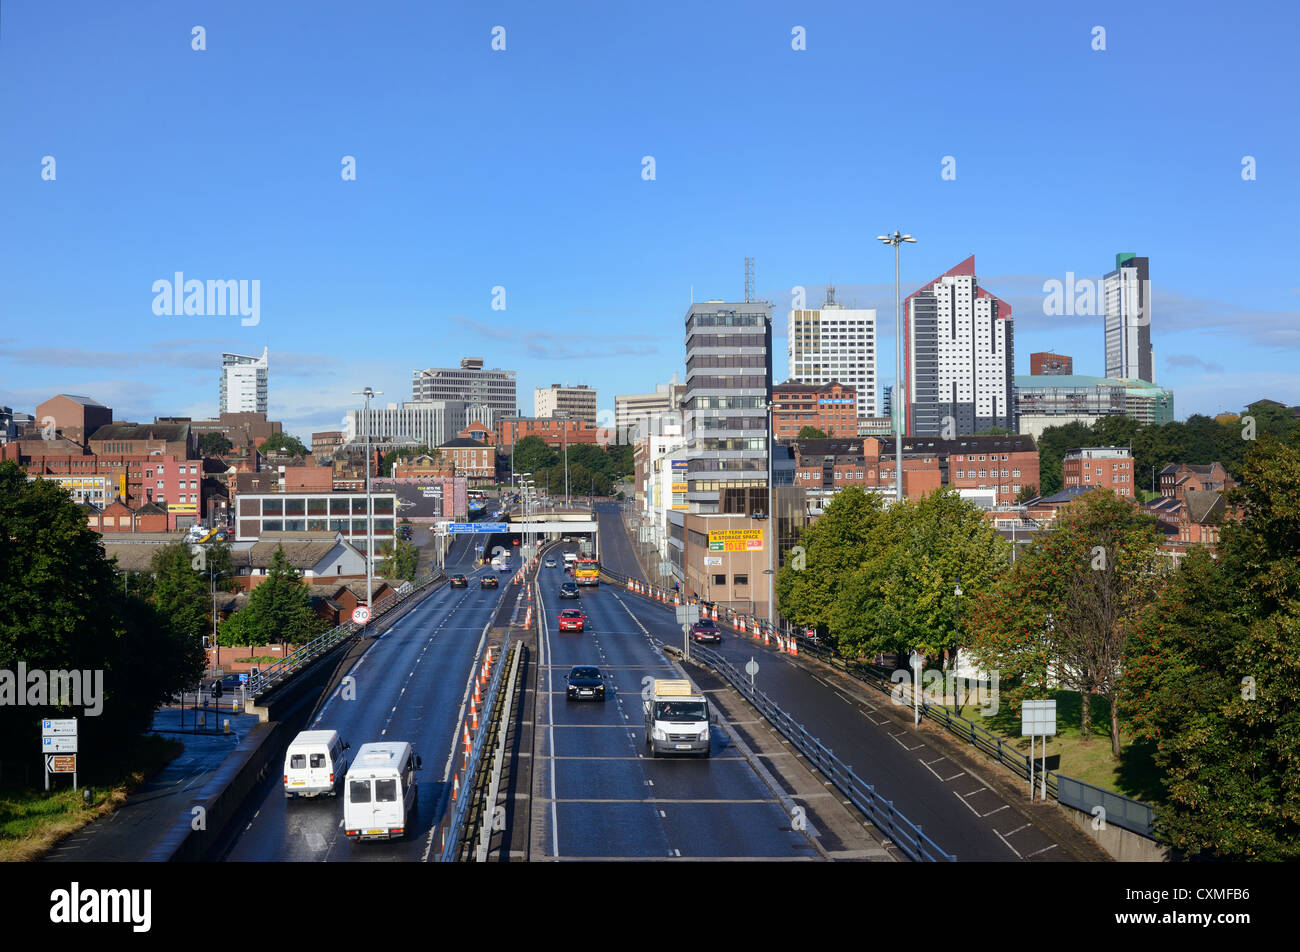 traffic heading too and from the city of leeds yorkshire uk - Stock Image